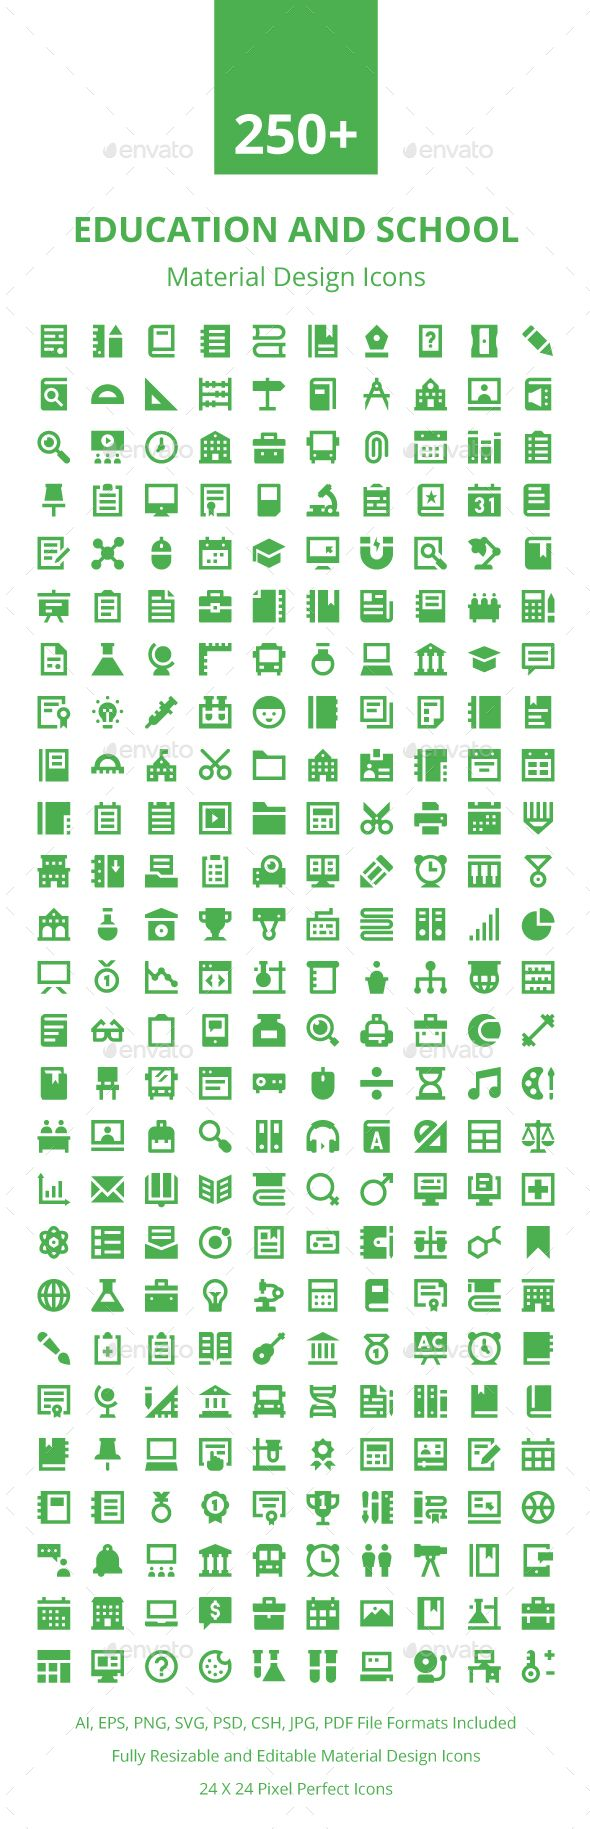 250+ Education Material Design Icons. Download here: https://graphicriver.net/item/250-education-material-design-icons/17672789?ref=ksioks